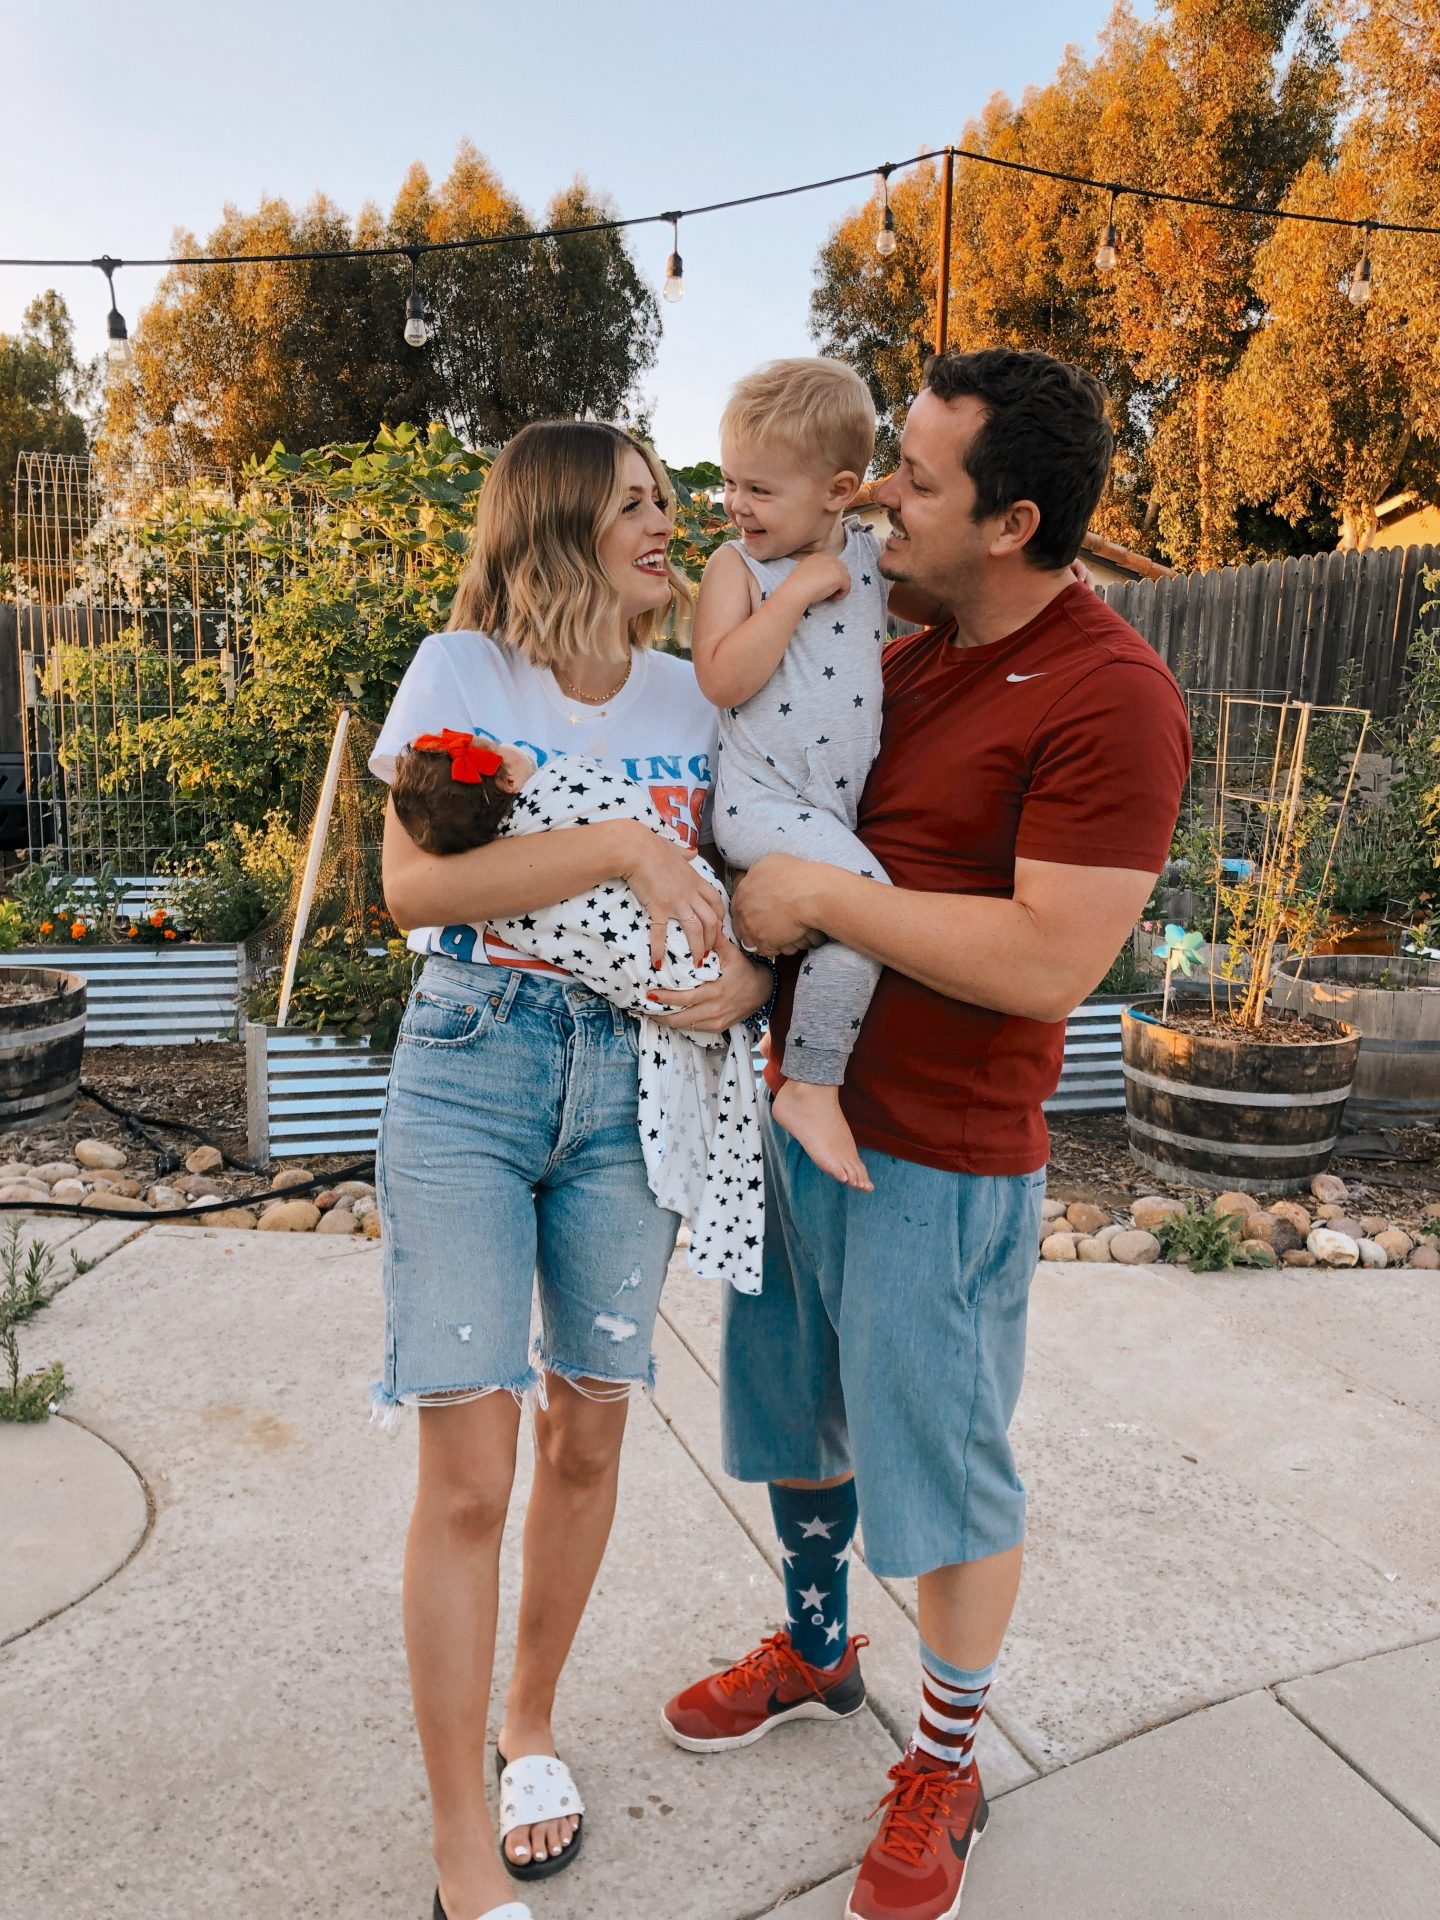 4th of July Fashion by popular San Diego fashion blog, Navy Grace: image of a mom and dad standing together while holding their kids and wearing AGolde jean shorts, Rolling Stones t-shirt, grey star print jumper, red nike sneakers, white slide sandals, and red nike t-shirt.